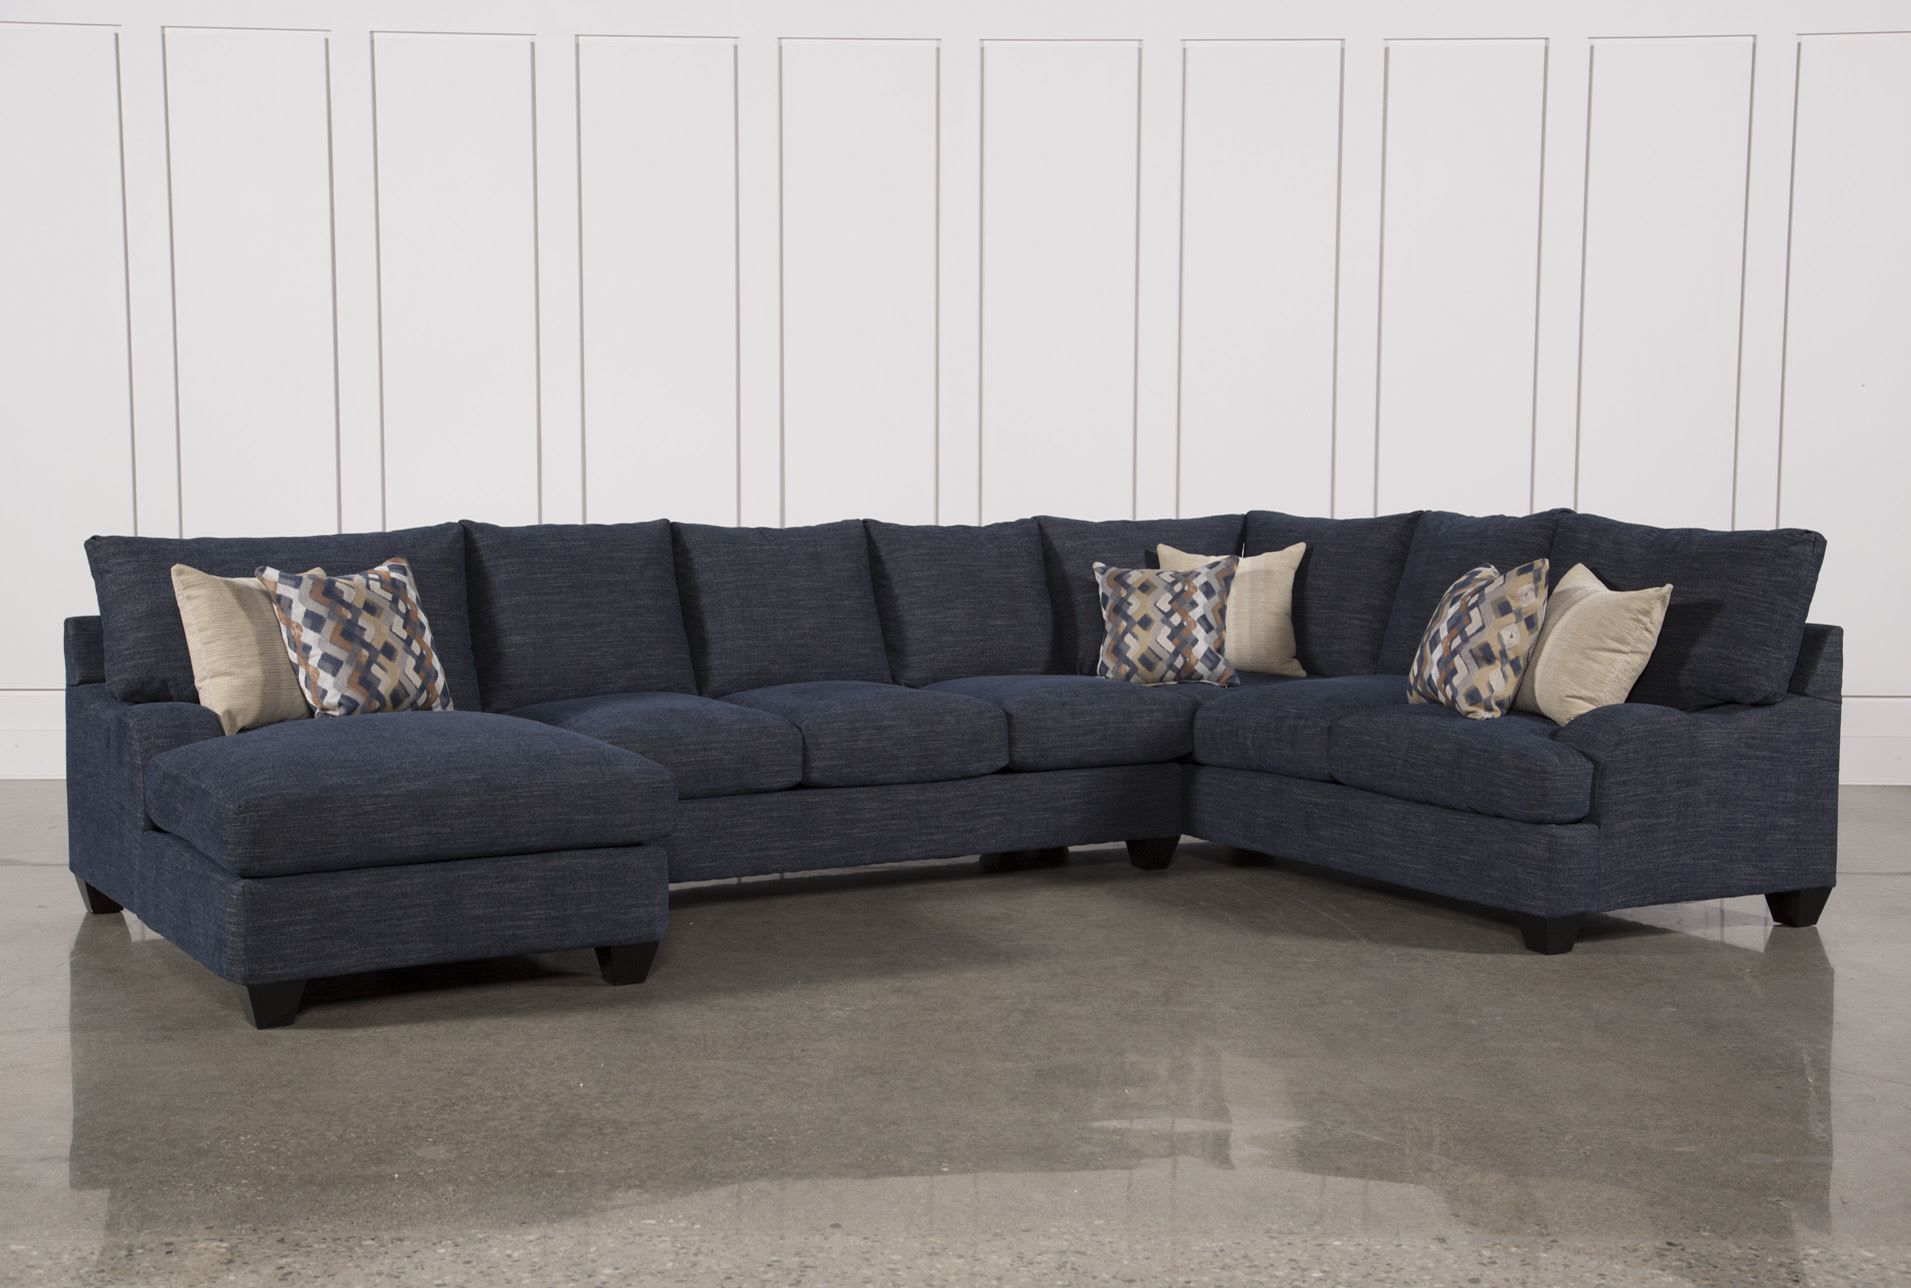 Sofa Reclinavel Como Inclinar Sierra Down 3 Piece Sectional W Laf Chaise In 2019 Sofas And